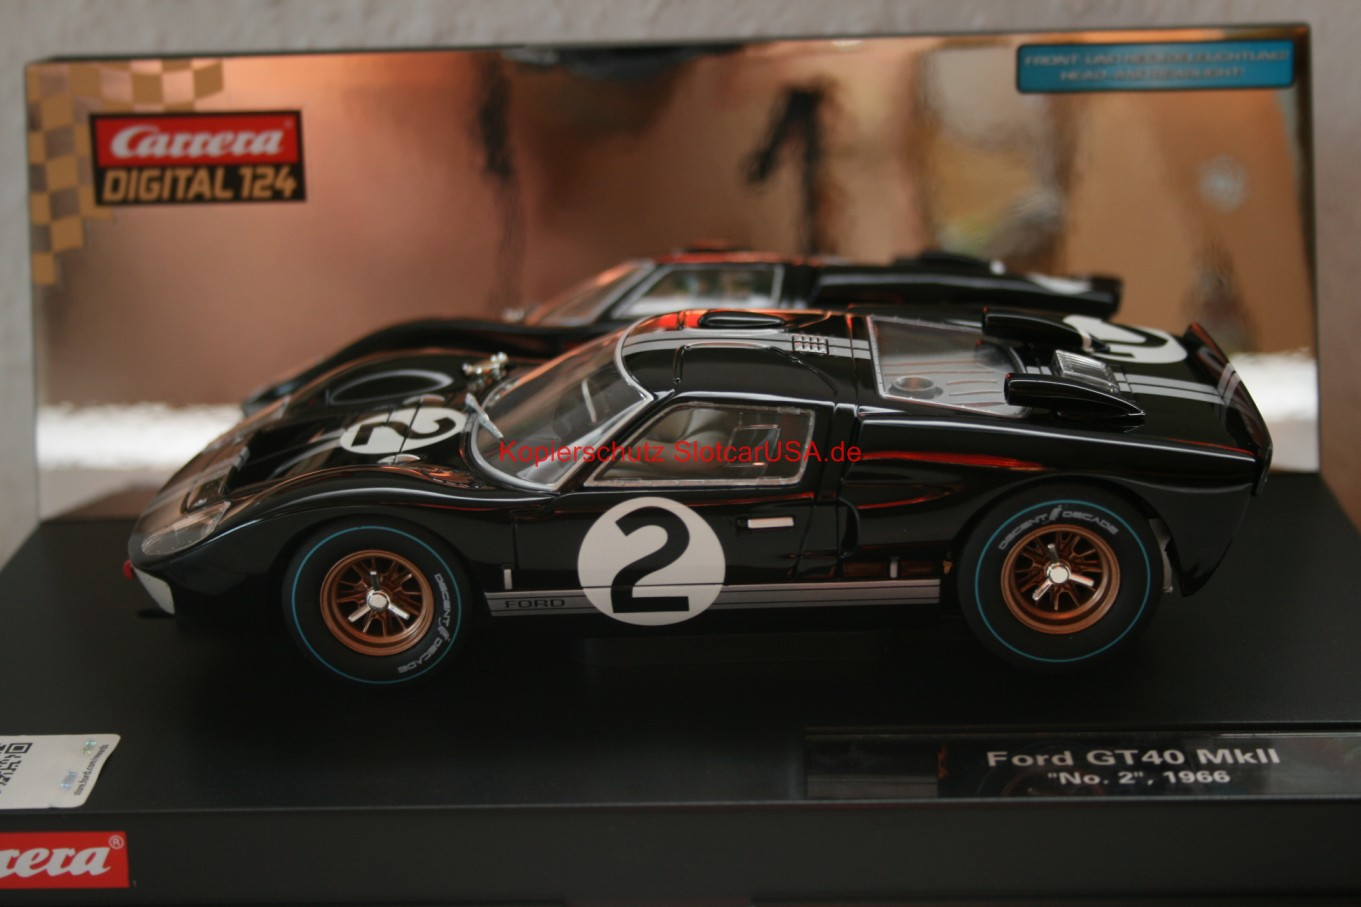 carrera digital 124 ford gt40. Black Bedroom Furniture Sets. Home Design Ideas